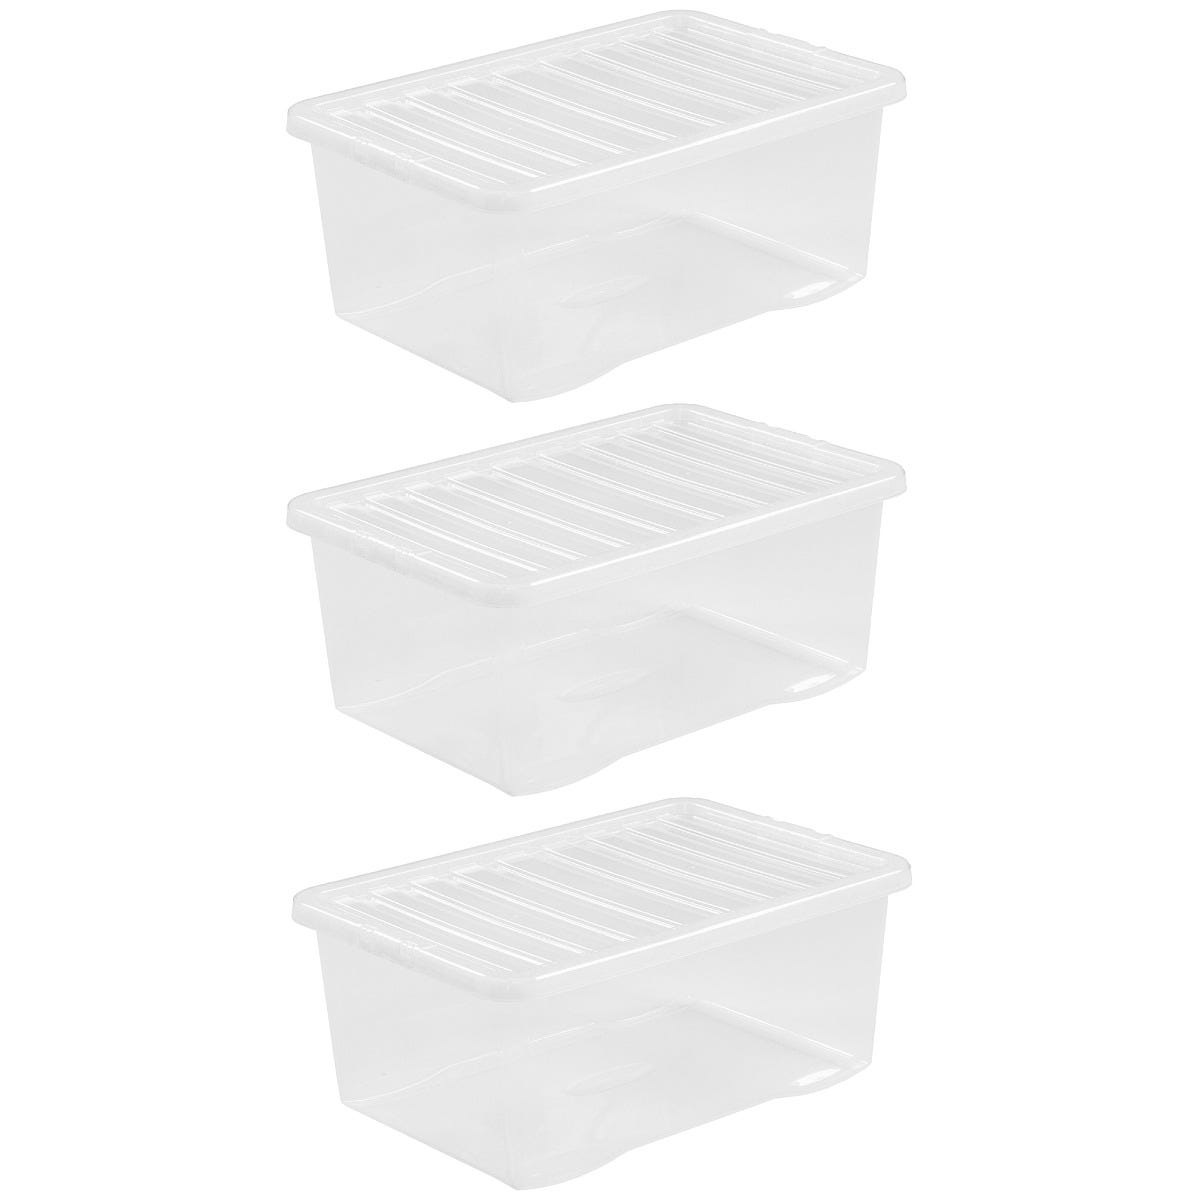 Wham Crystal Clear Storage Box with Lid 45L - Set of 3